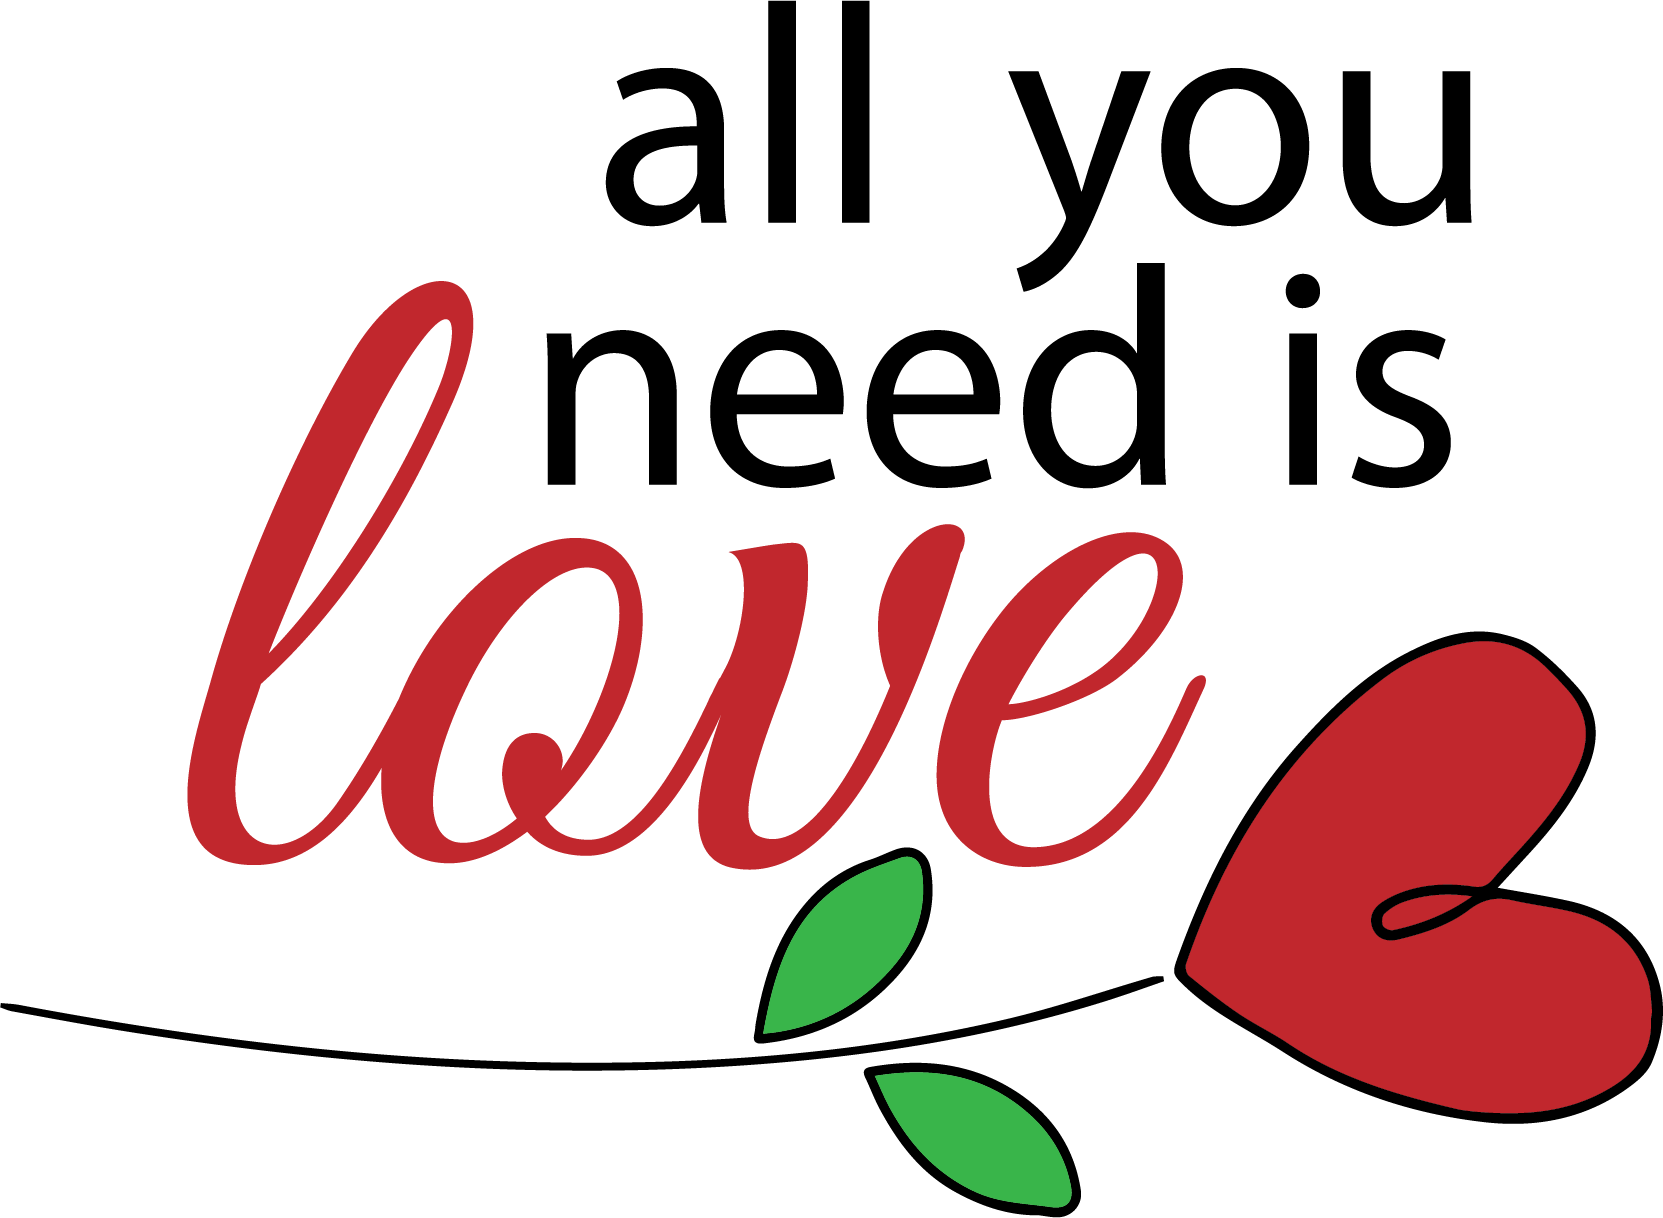 Download All You Need is Love - free SVG #freesvg in 2020 | All you ...